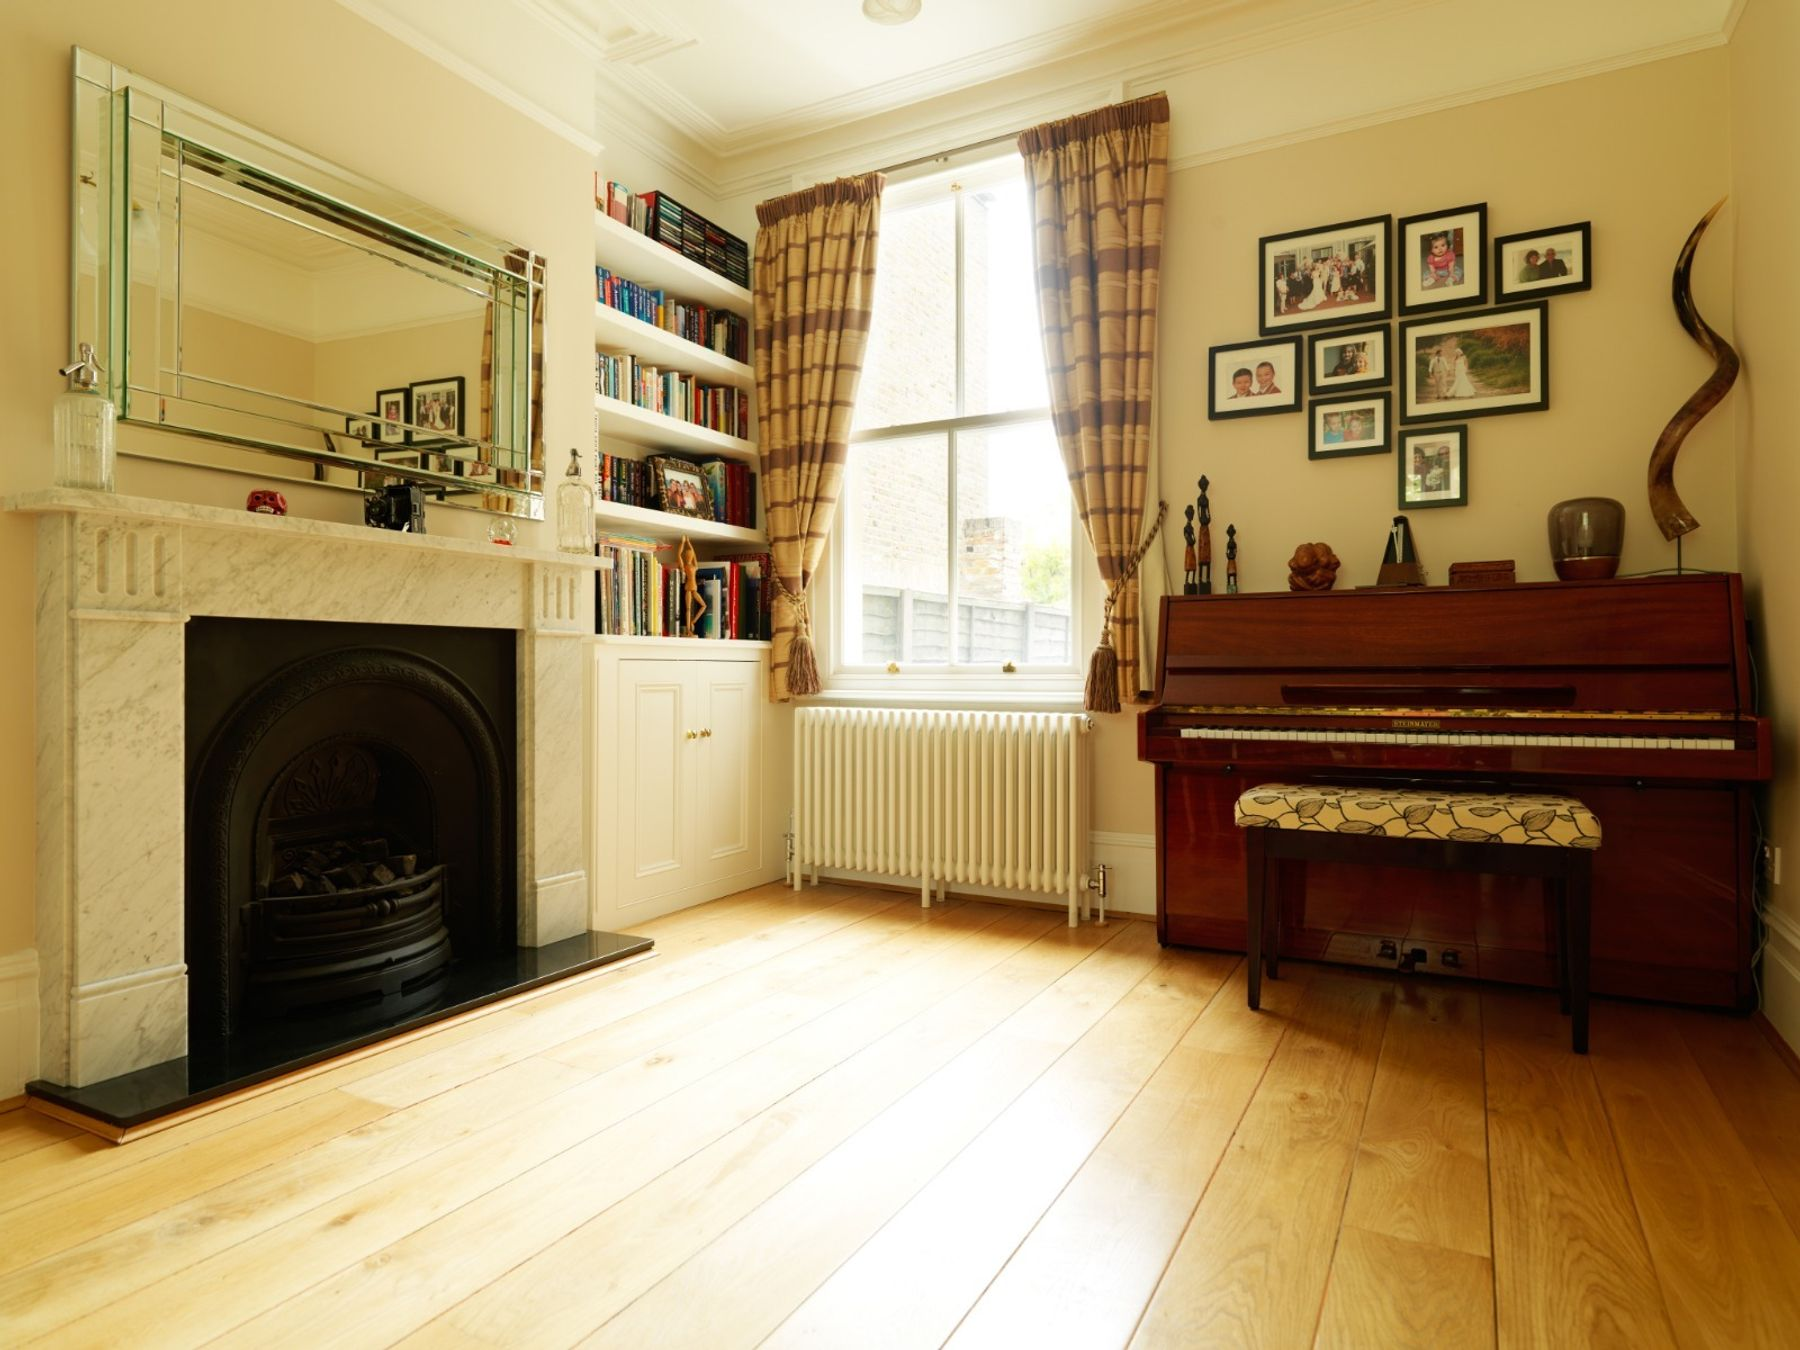 Living Room/Dining Room rehearsal space with upright piano